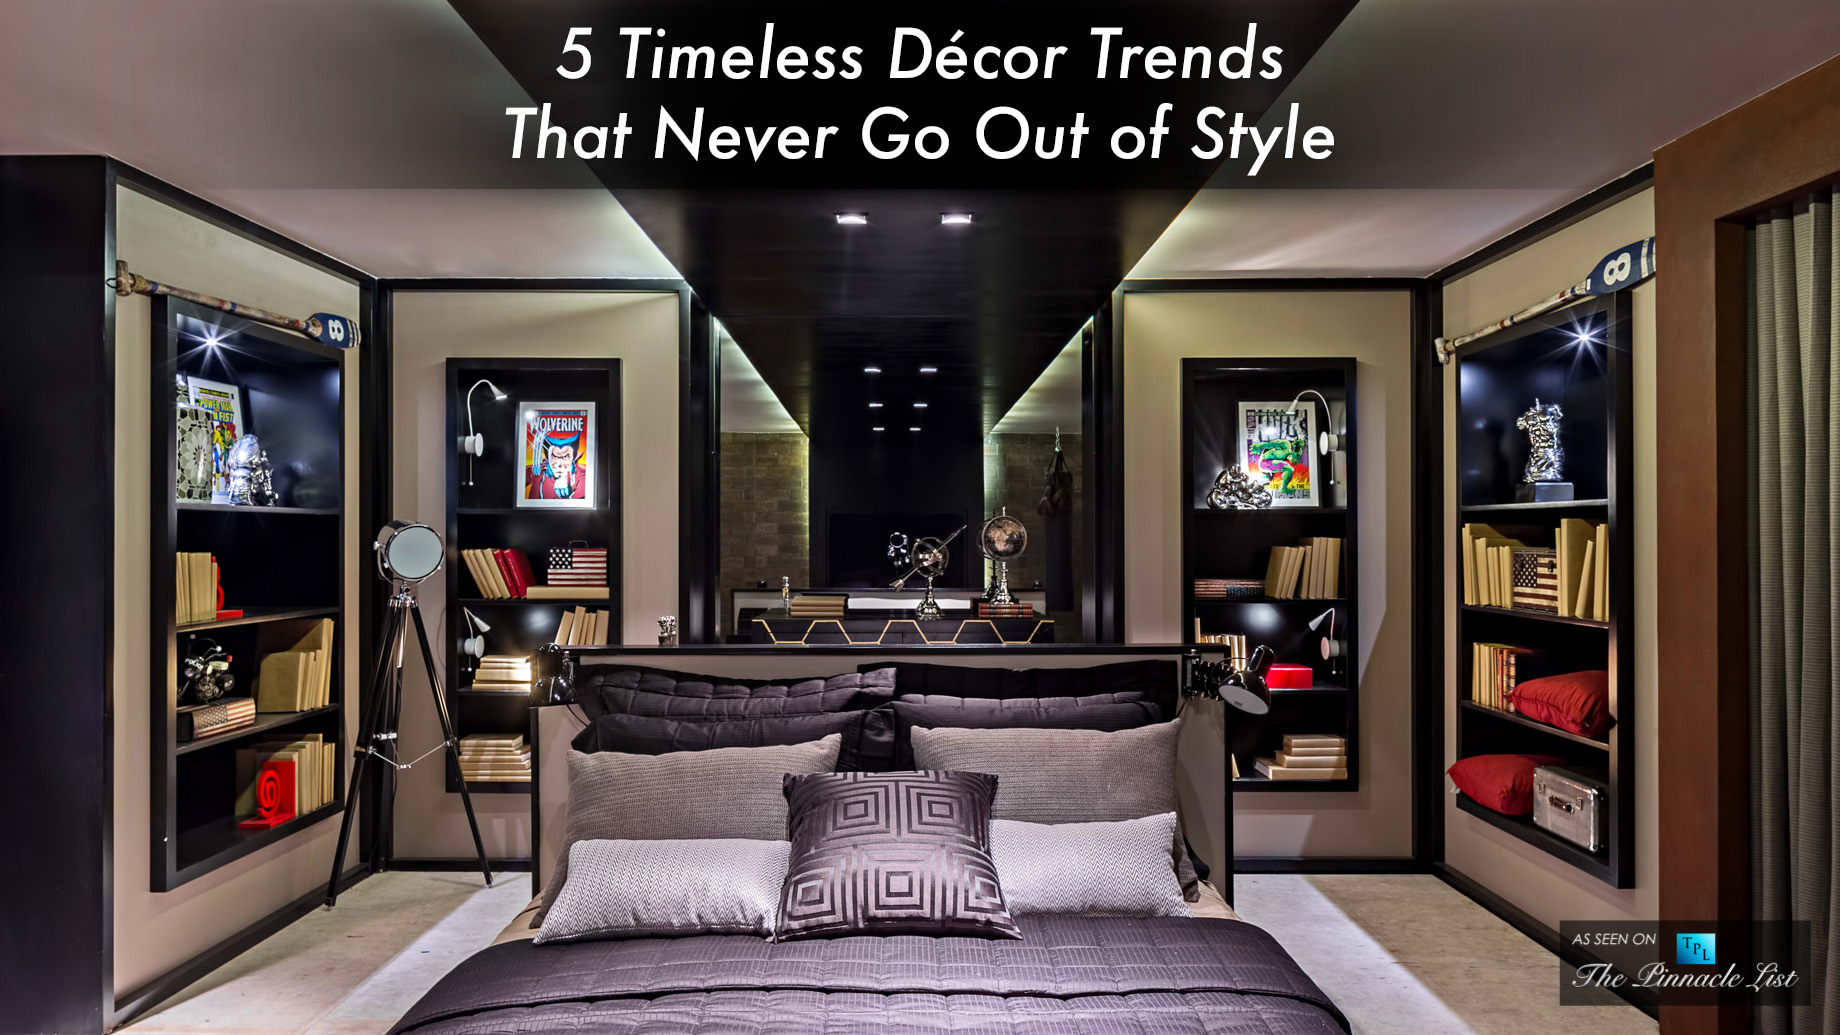 5 Timeless Decor Trends That Never Go Out of Style